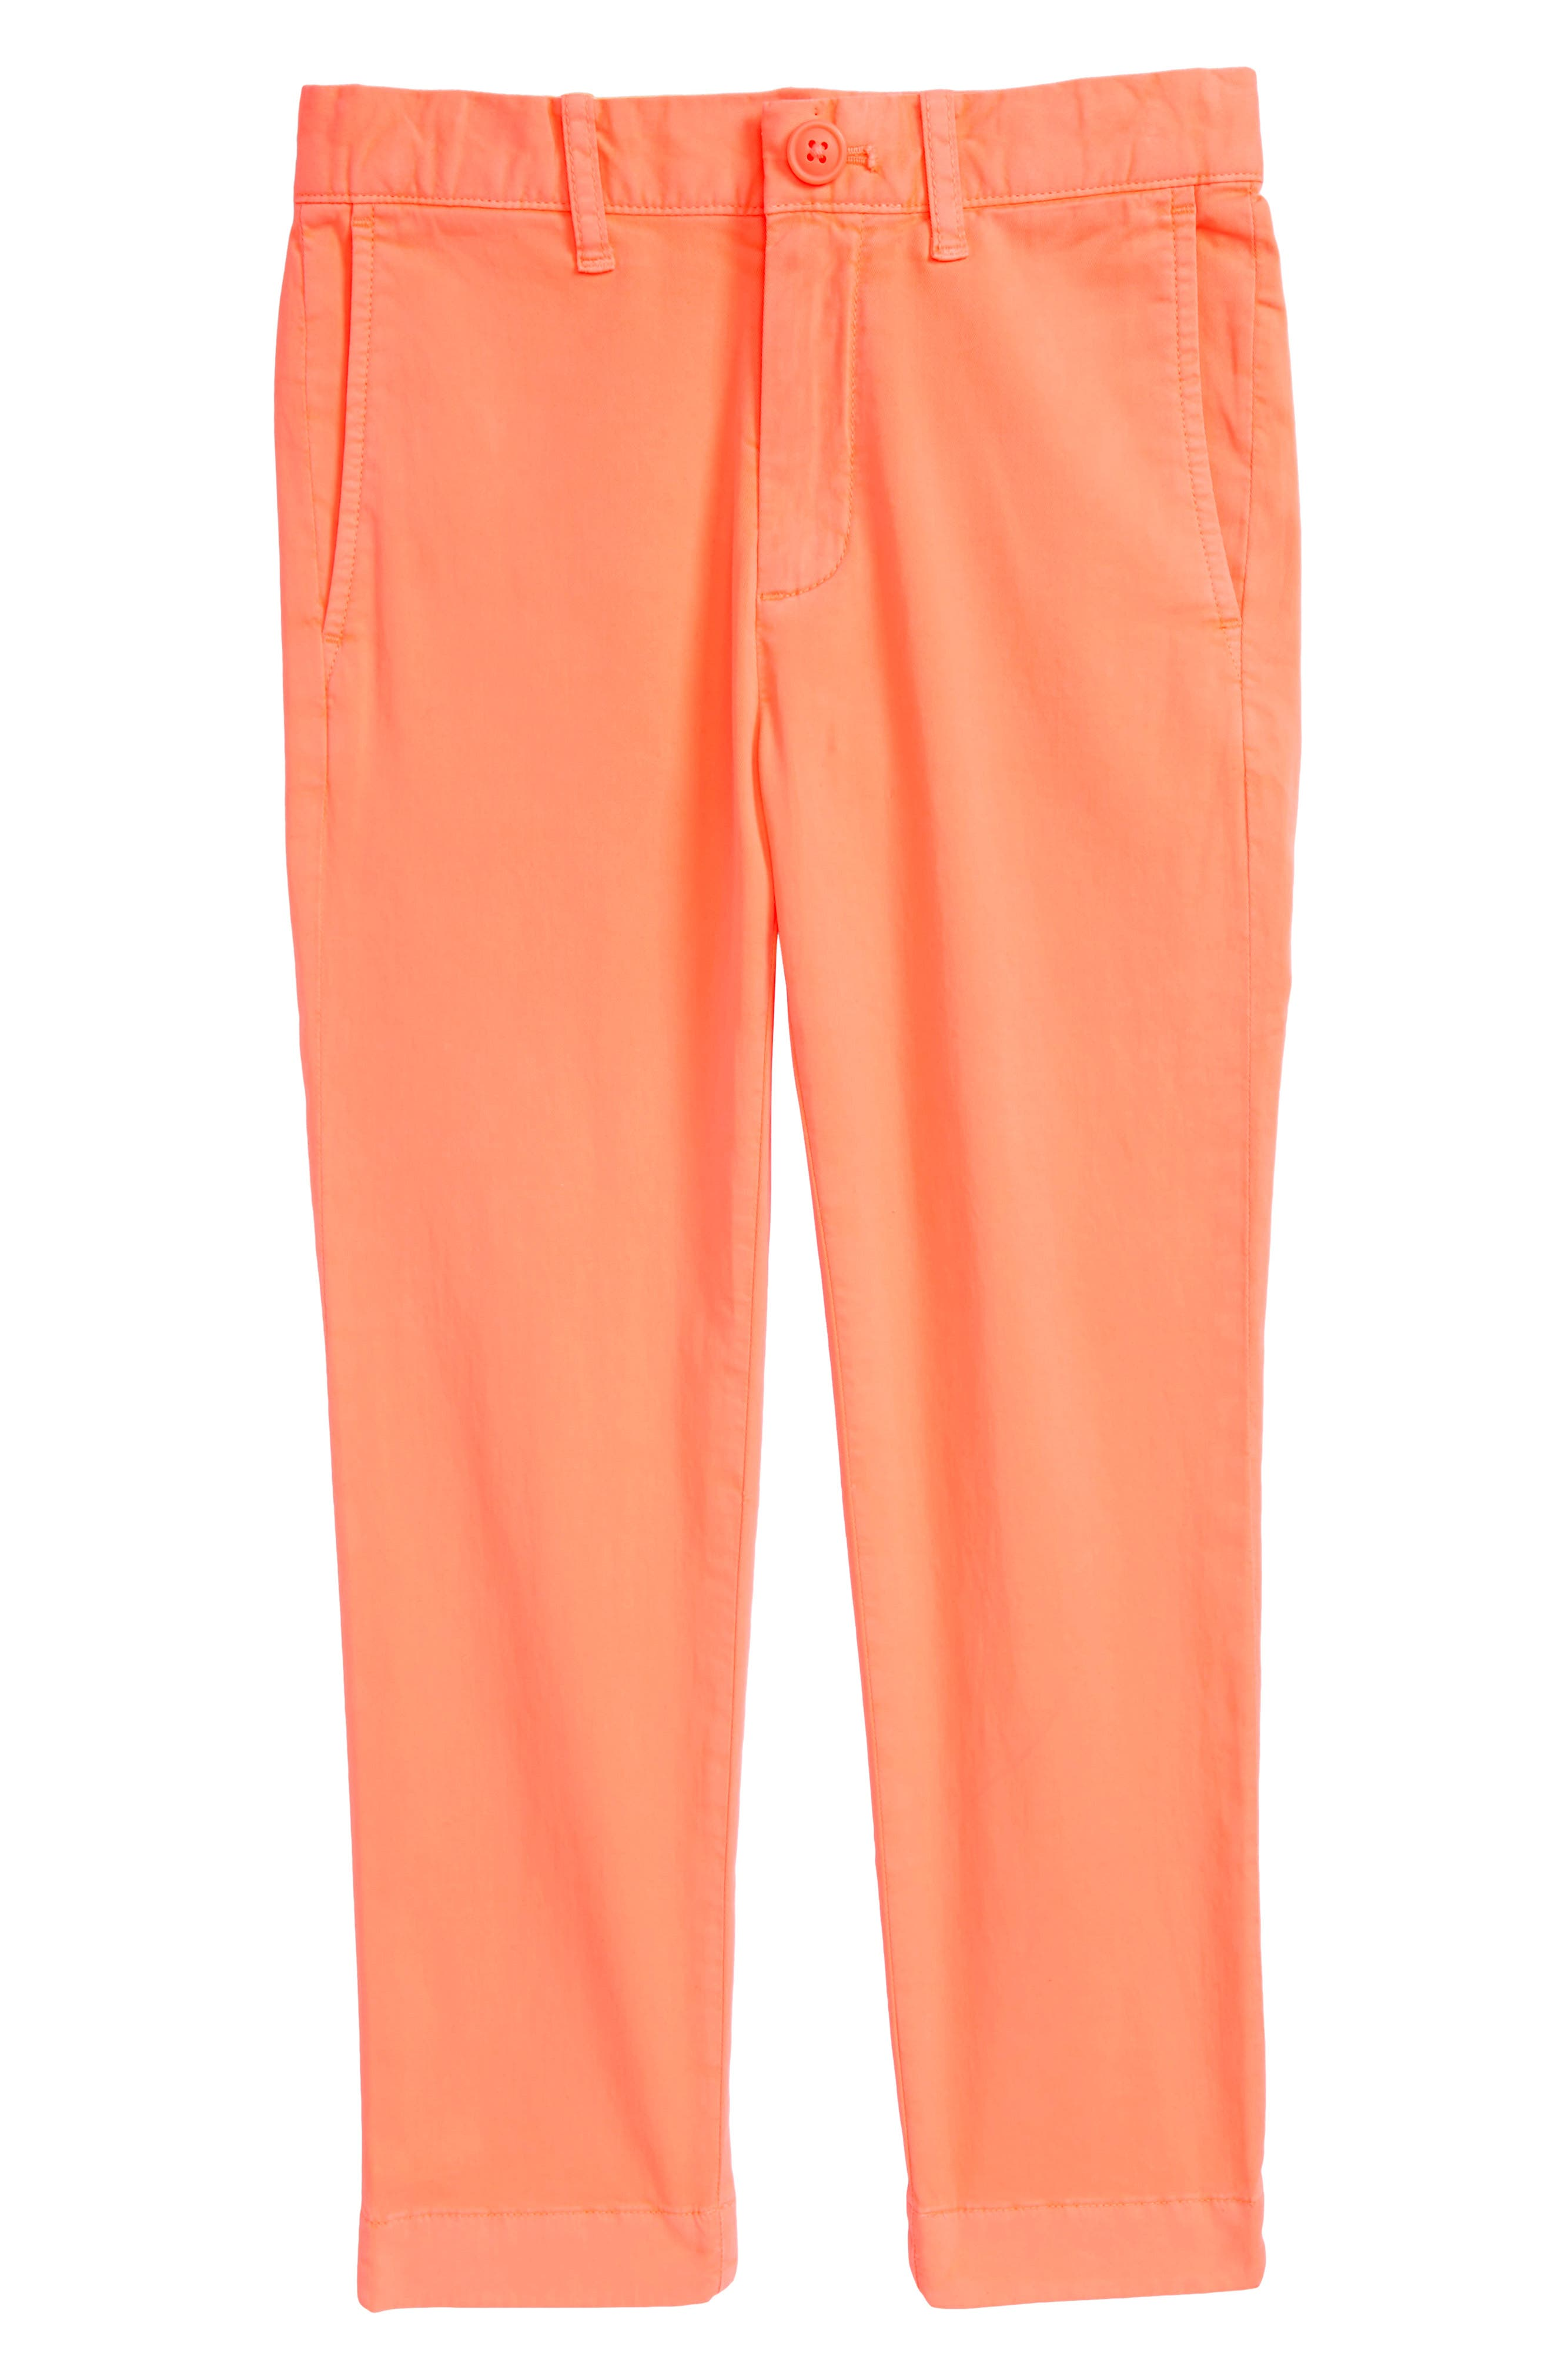 Skinny Stretch Chino Pants,                         Main,                         color, Neon Coral